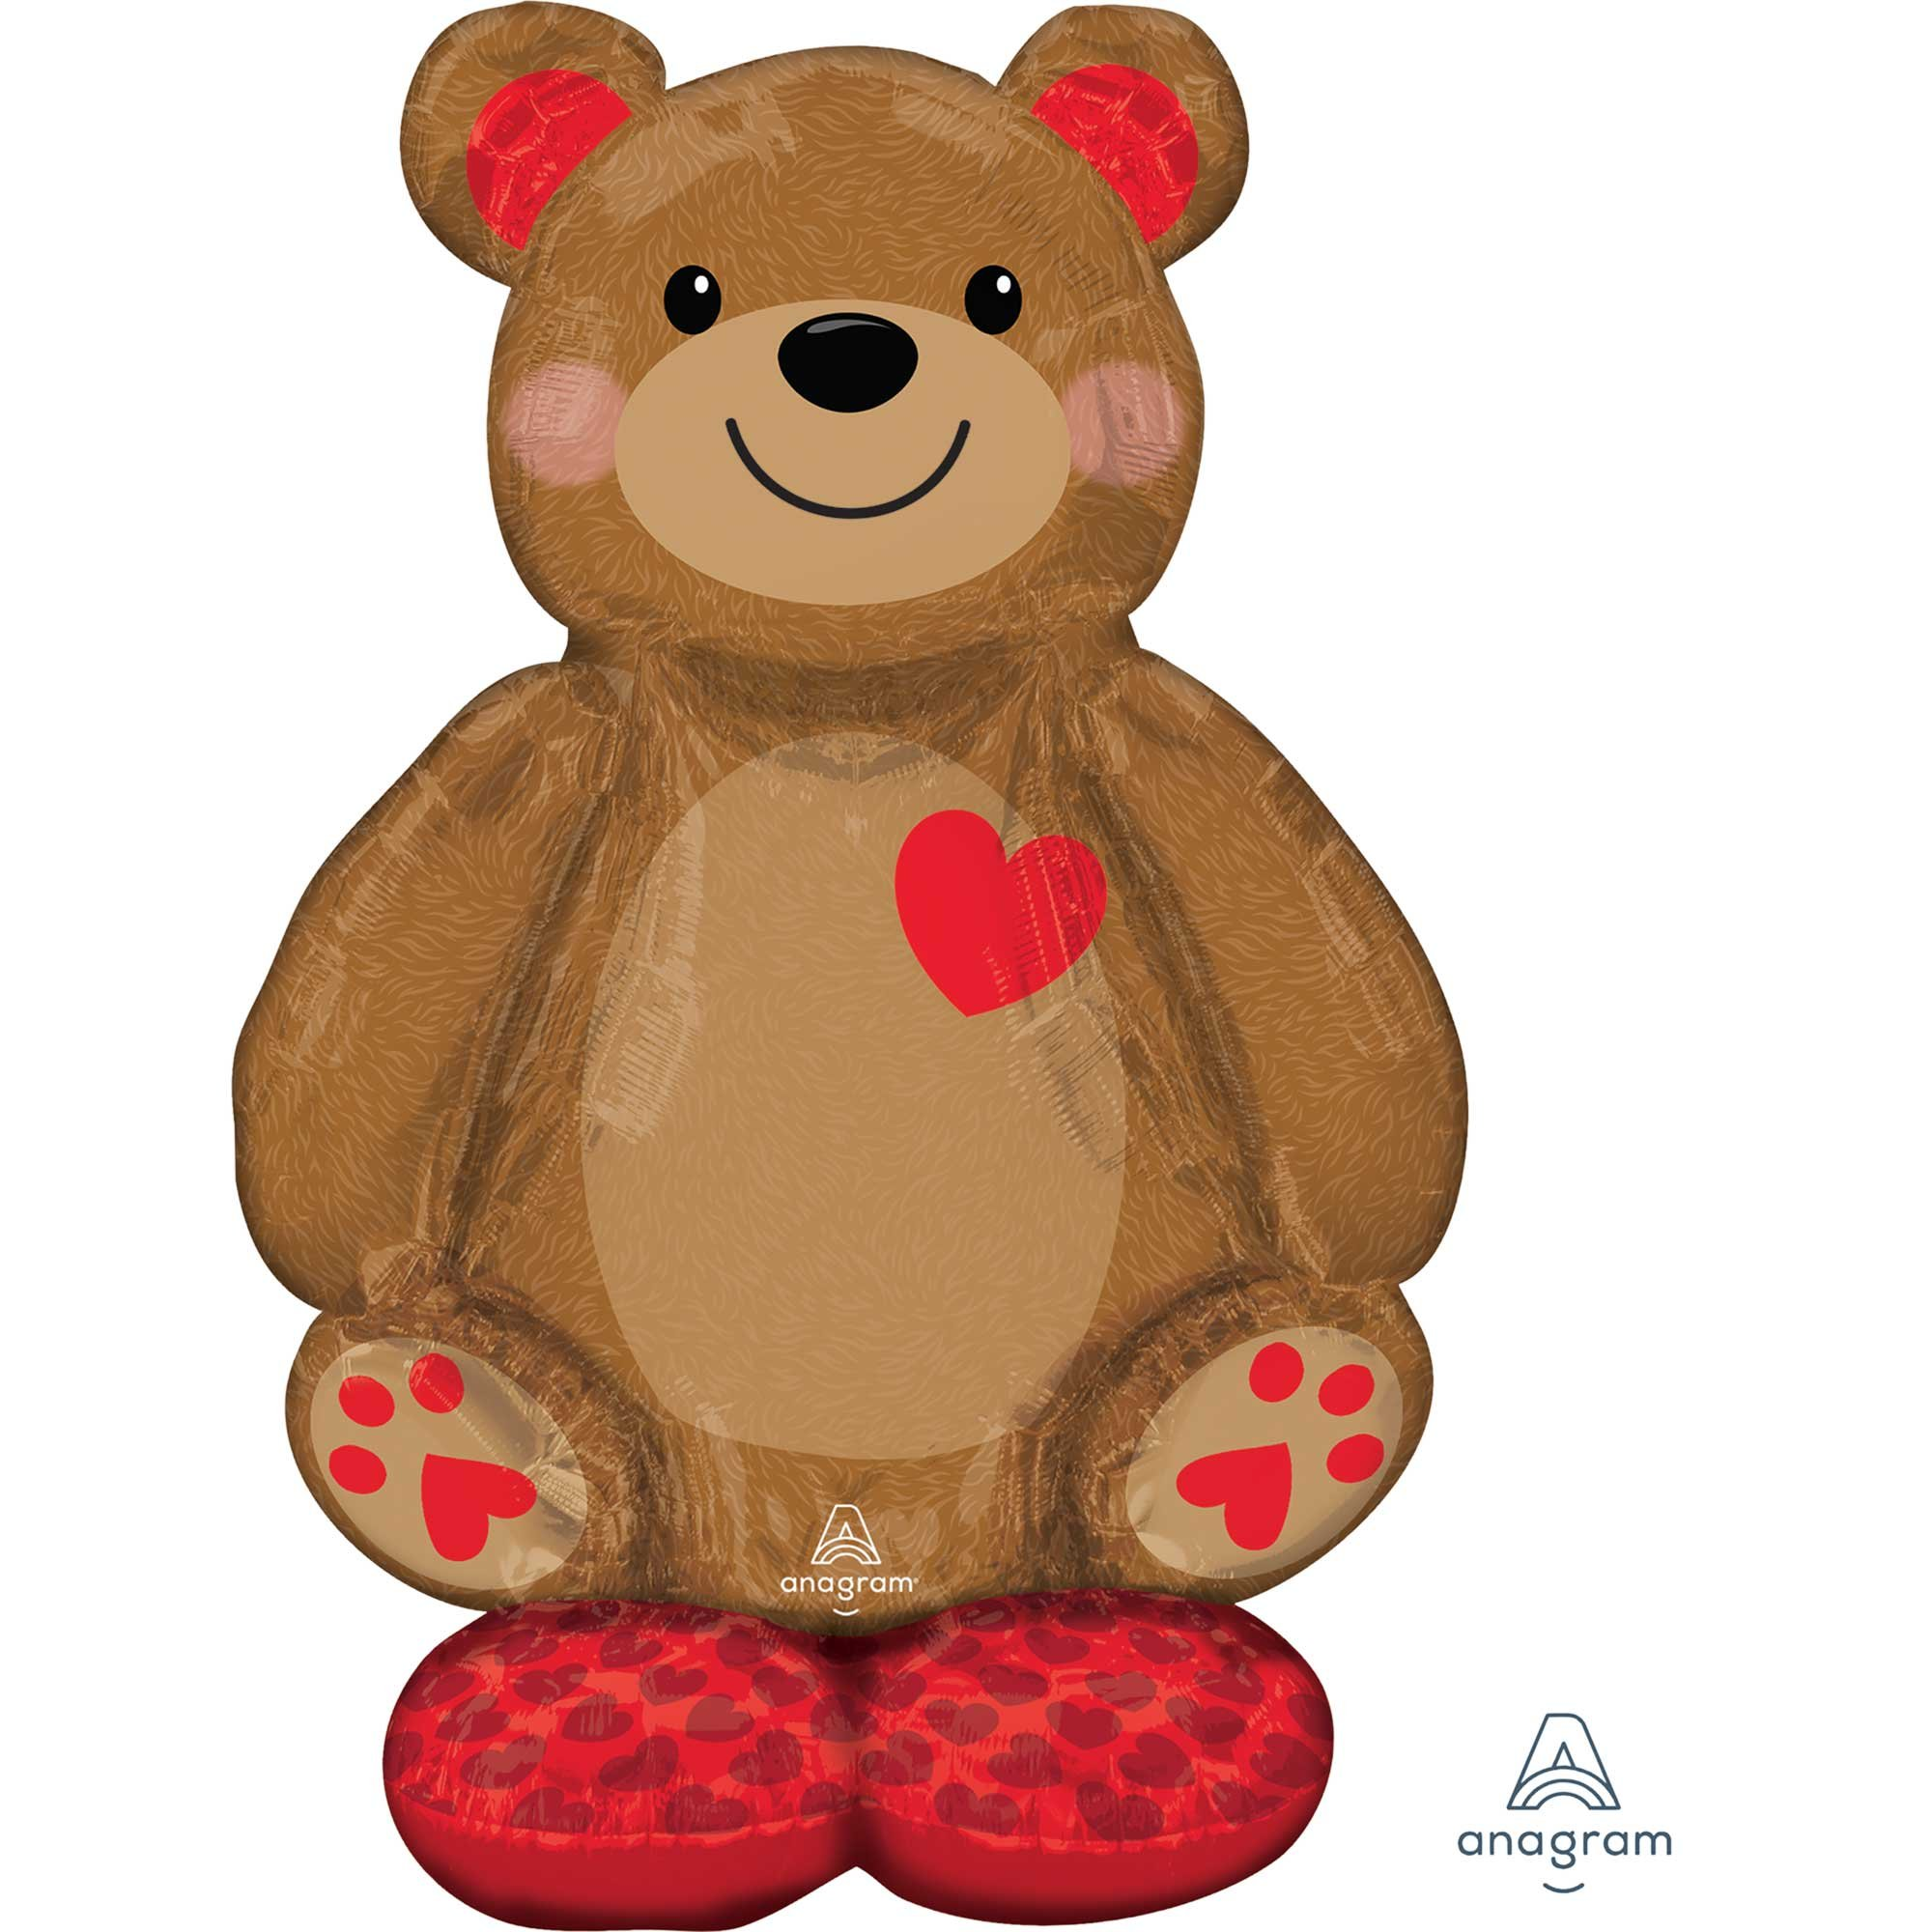 CI: AirLoonz Big Cuddly Teddy P70